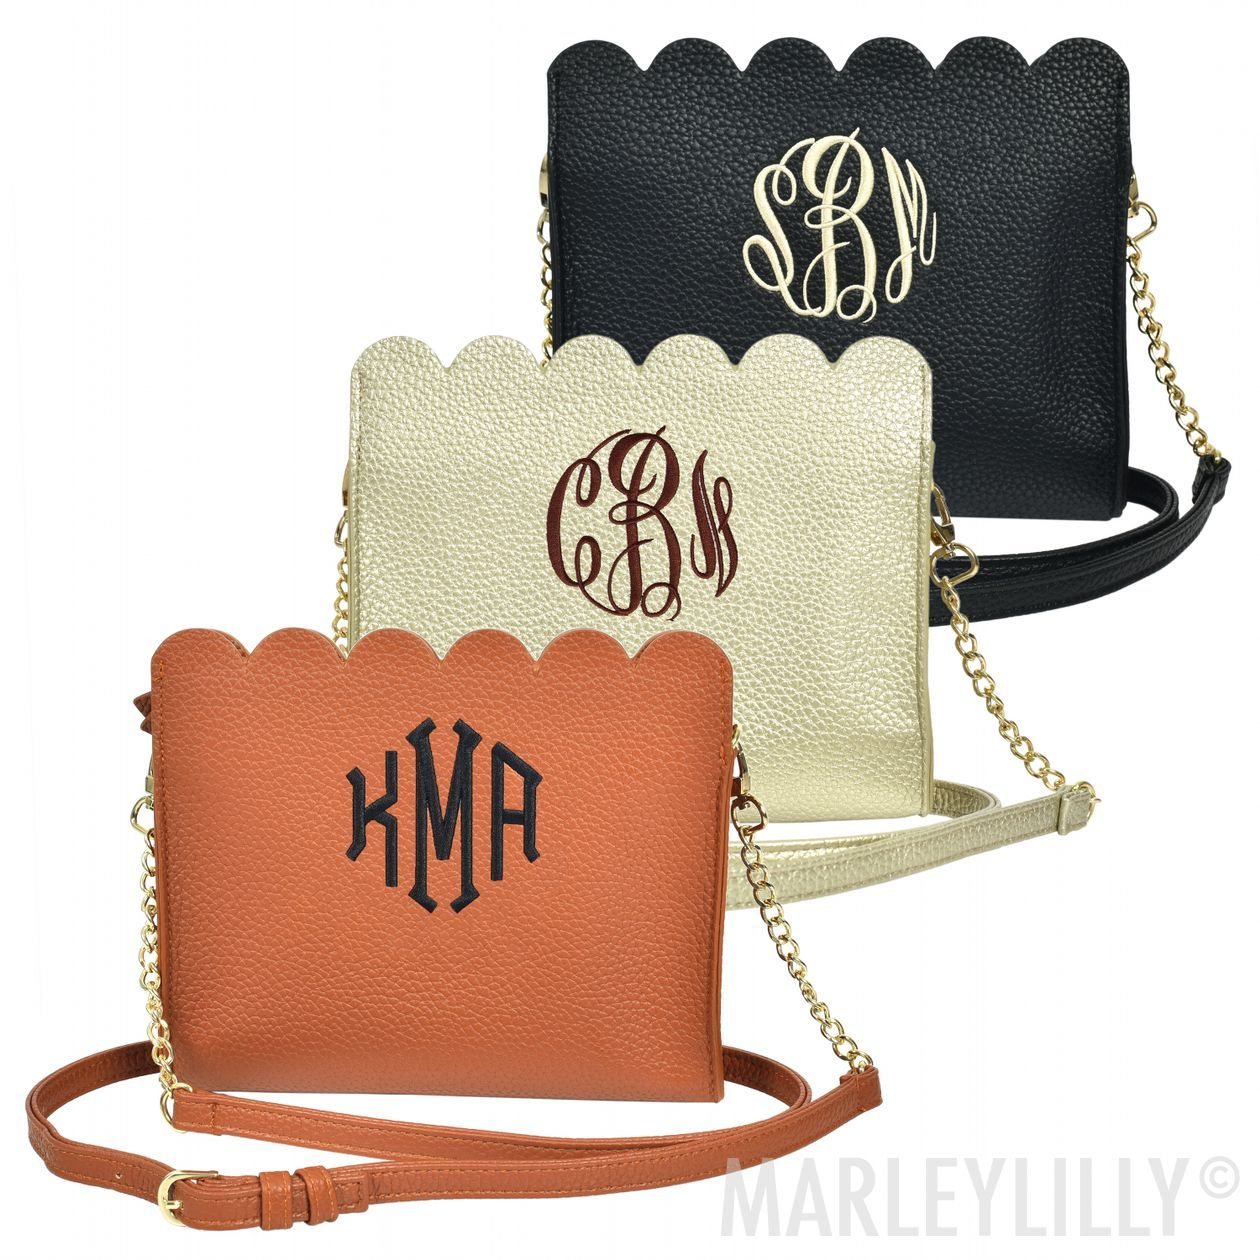 Monogrammed Scalloped Crossbody Bag Bags, Quilted purses